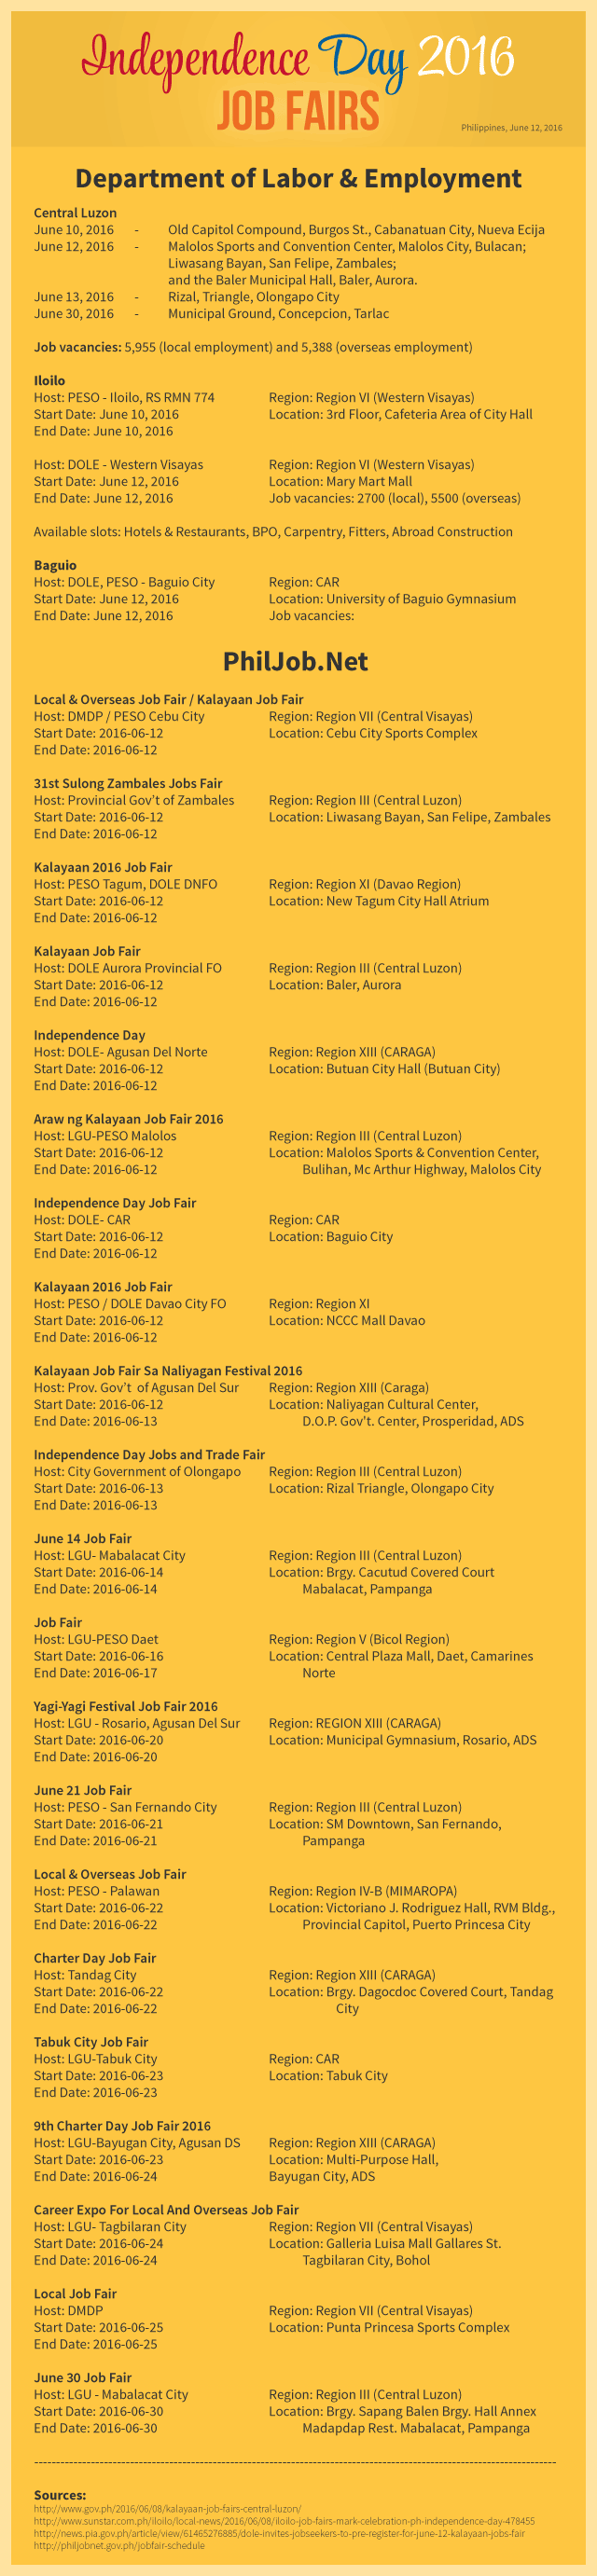 independence day 2016 job fairs summary